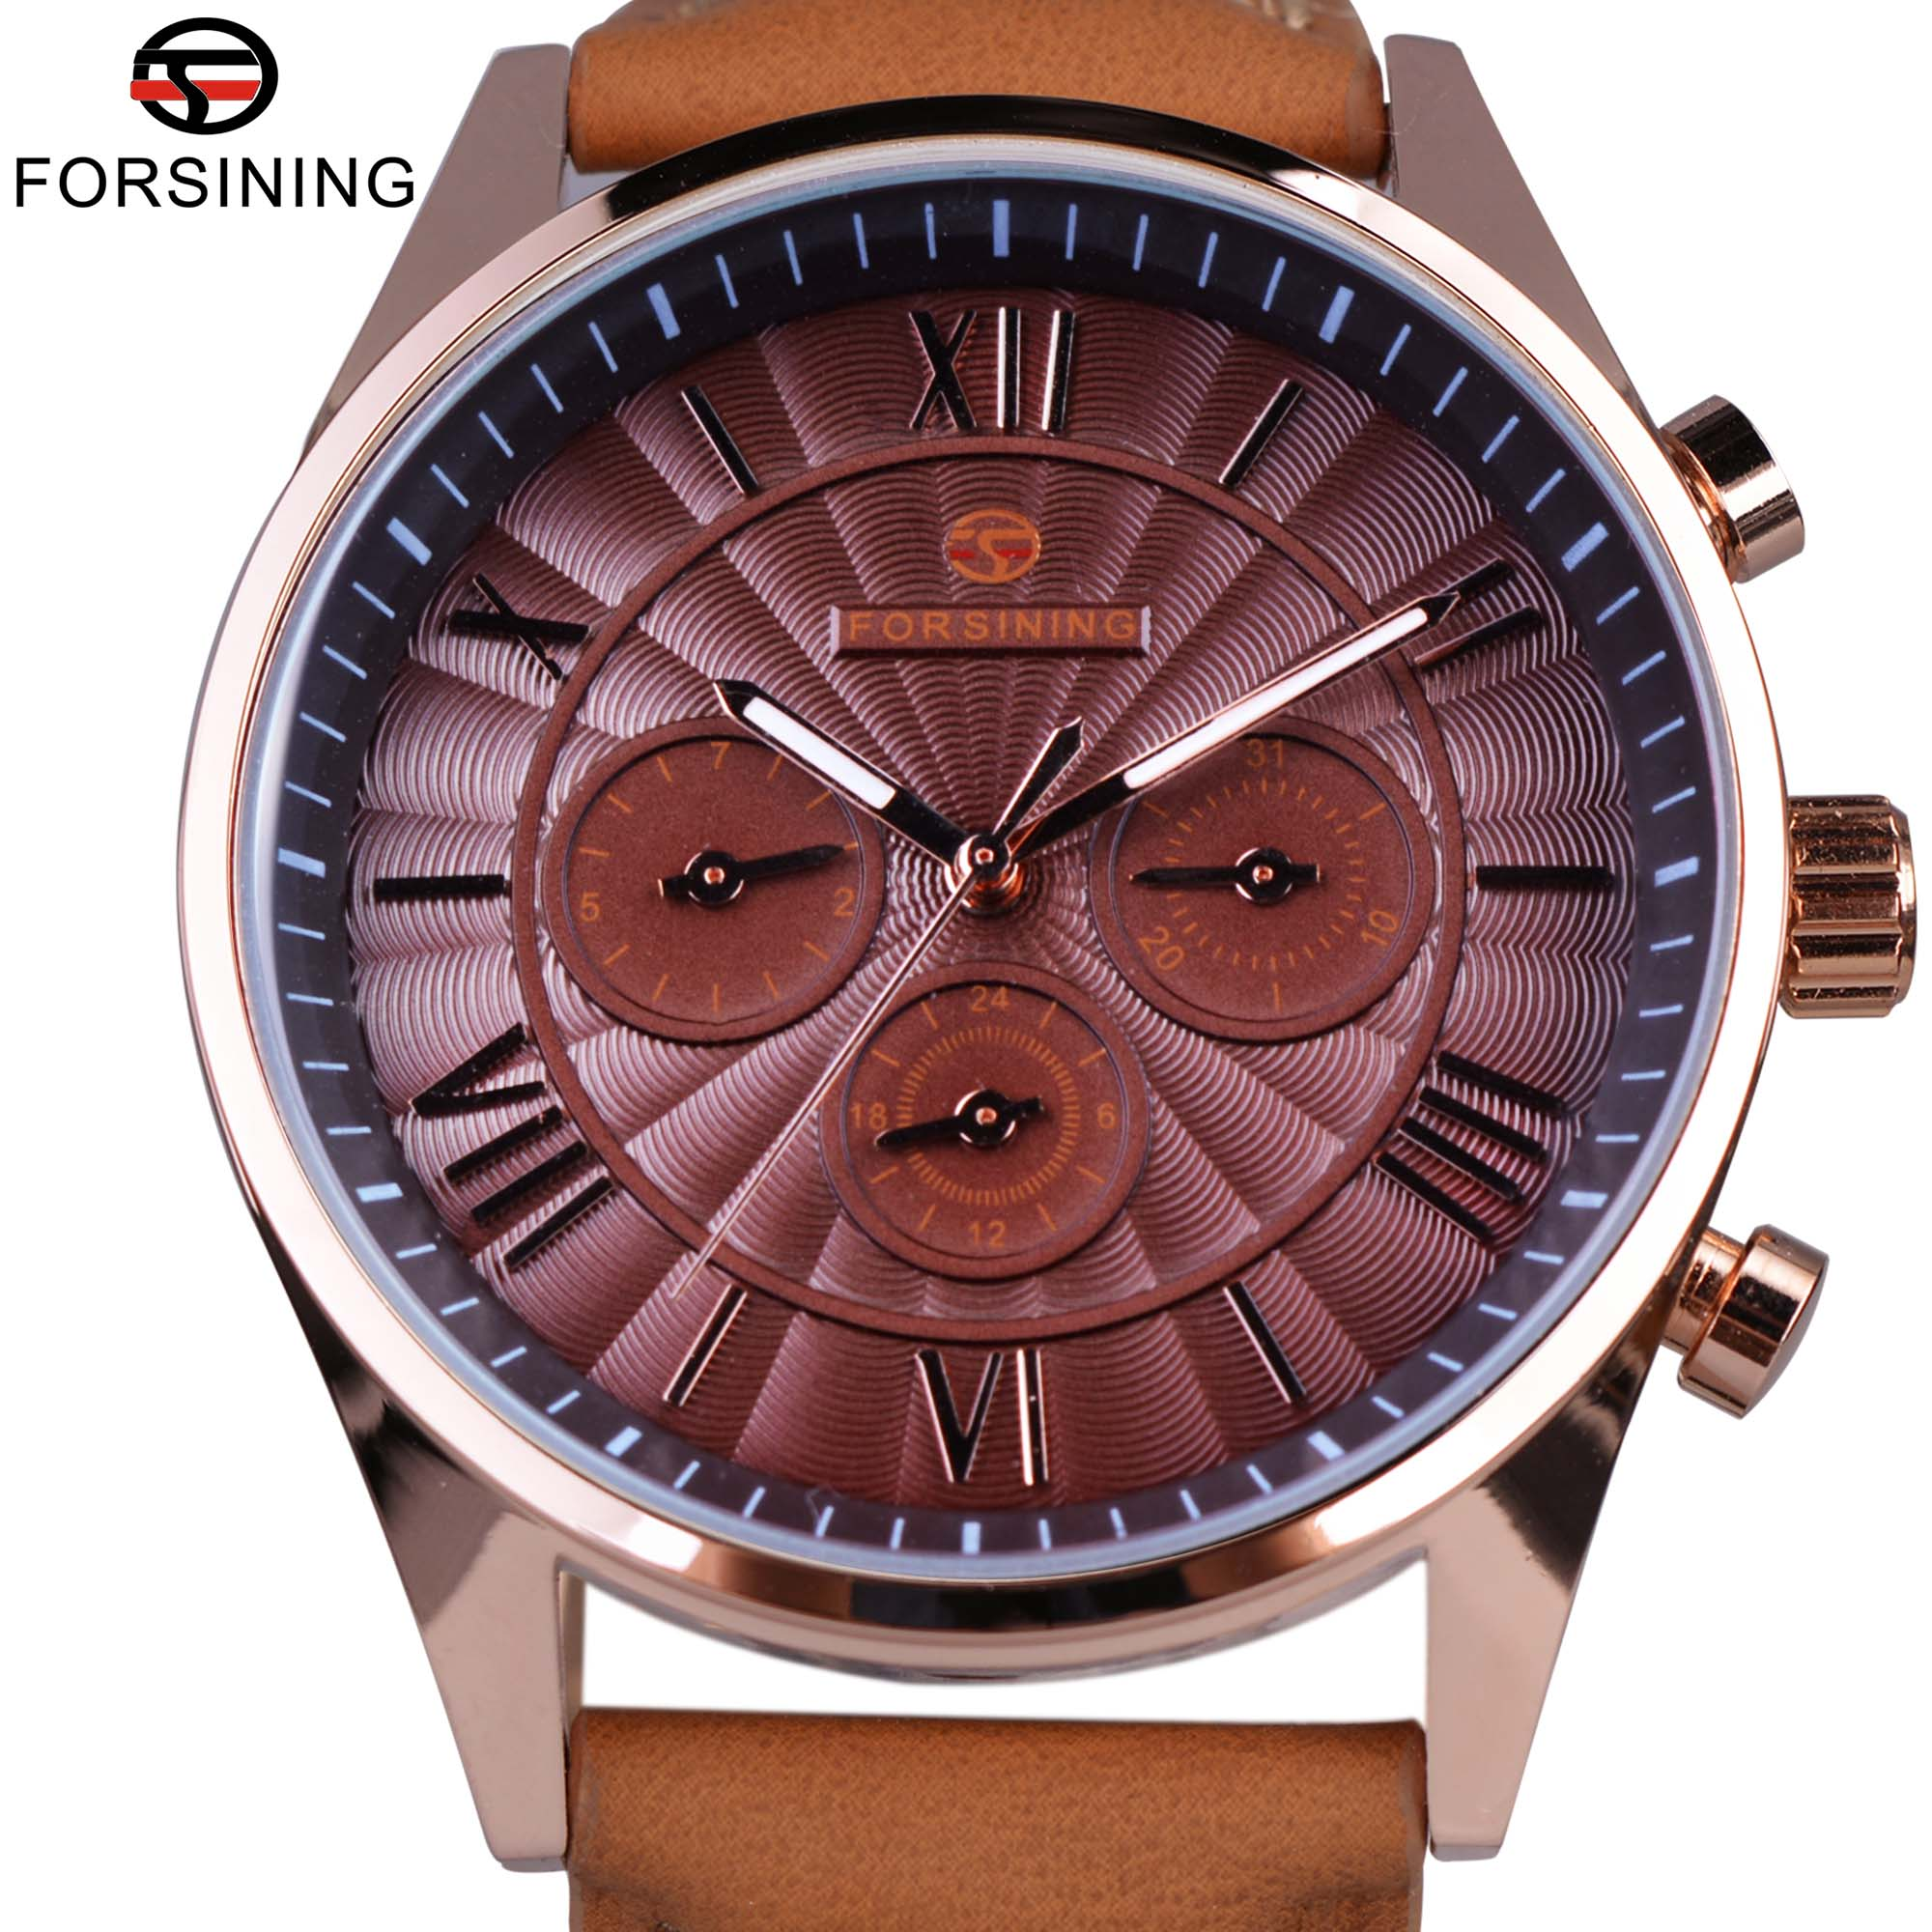 Forsining Classic Series Swirl Dial Suede Strap 6 Hands Calendar Display Men Watches Top Brand Luxury Automatic Watch Clock Men whole sale baby safety car seat 4 colors age range 2 10 years old baby car seat for kid active loading weight 9 30 kg baby seat